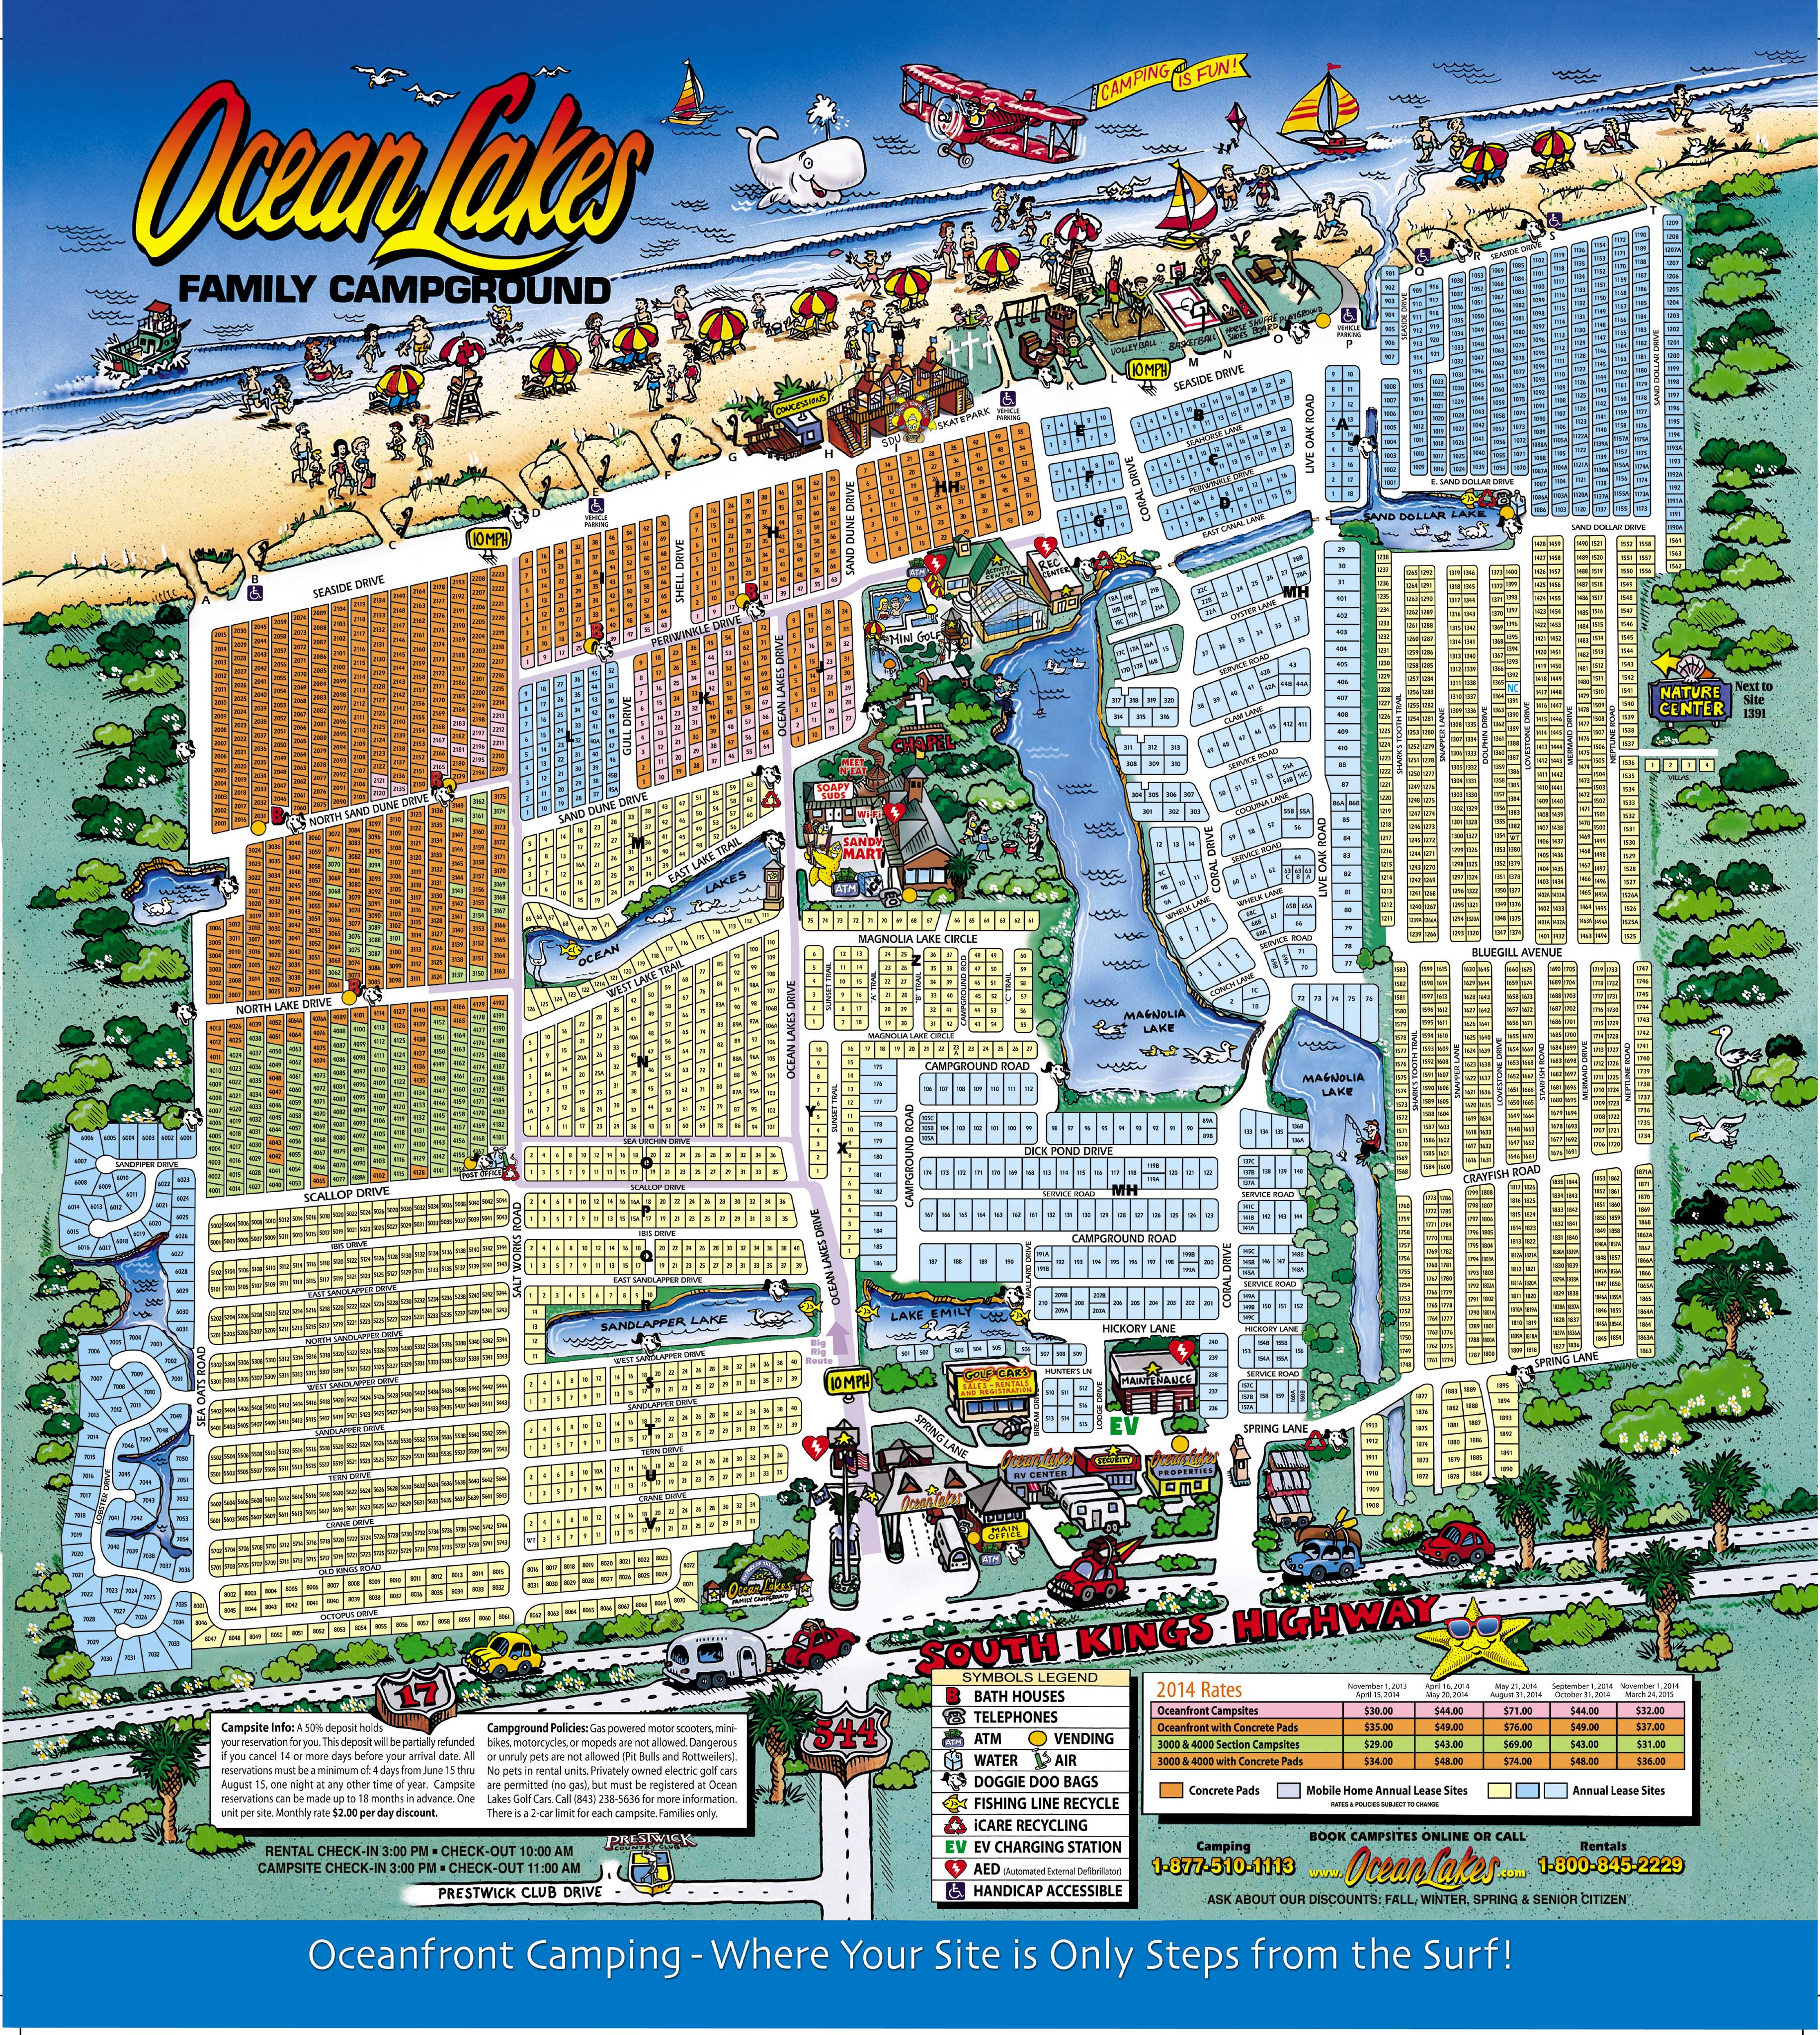 Oceanlakes2017map Ocean Lakes Family Campground